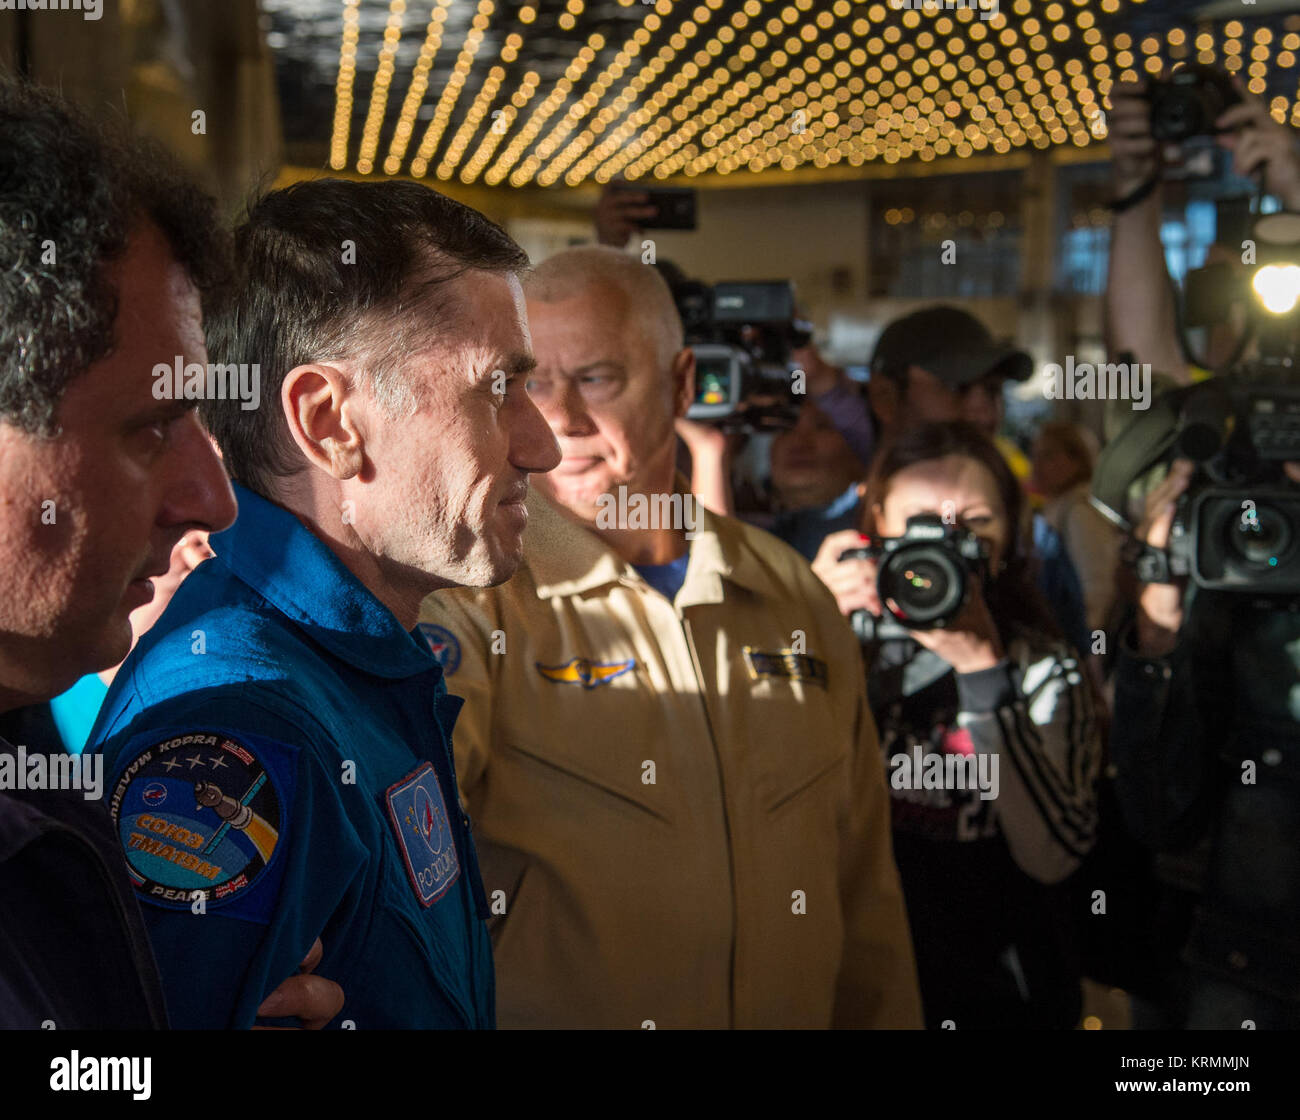 Expedition 47 cosmonaut Yuri Malenchenko of Roscosmos arrives at the Karaganda Airport in Kazakhstan a few hours - Stock Image